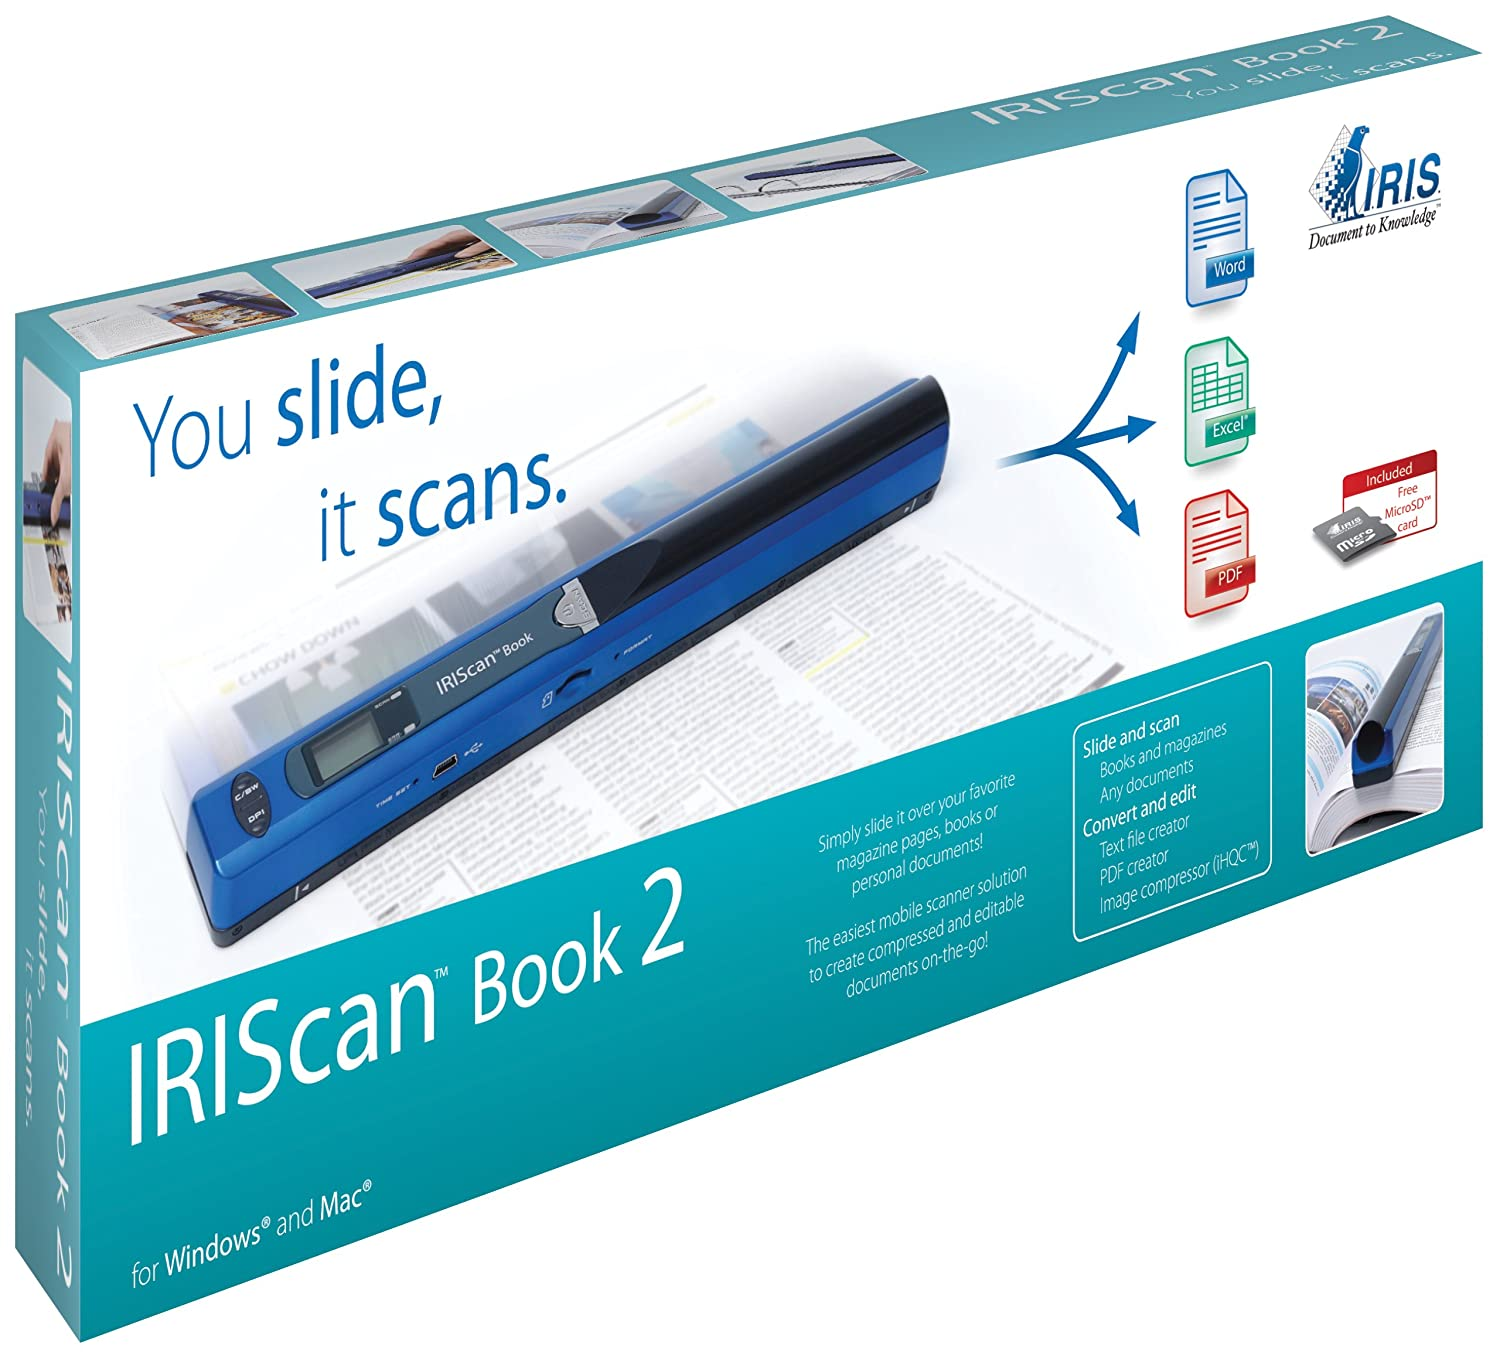 I.R.I.S. IRIScan BOOK 2 Scanner Handheld/manuale 457368